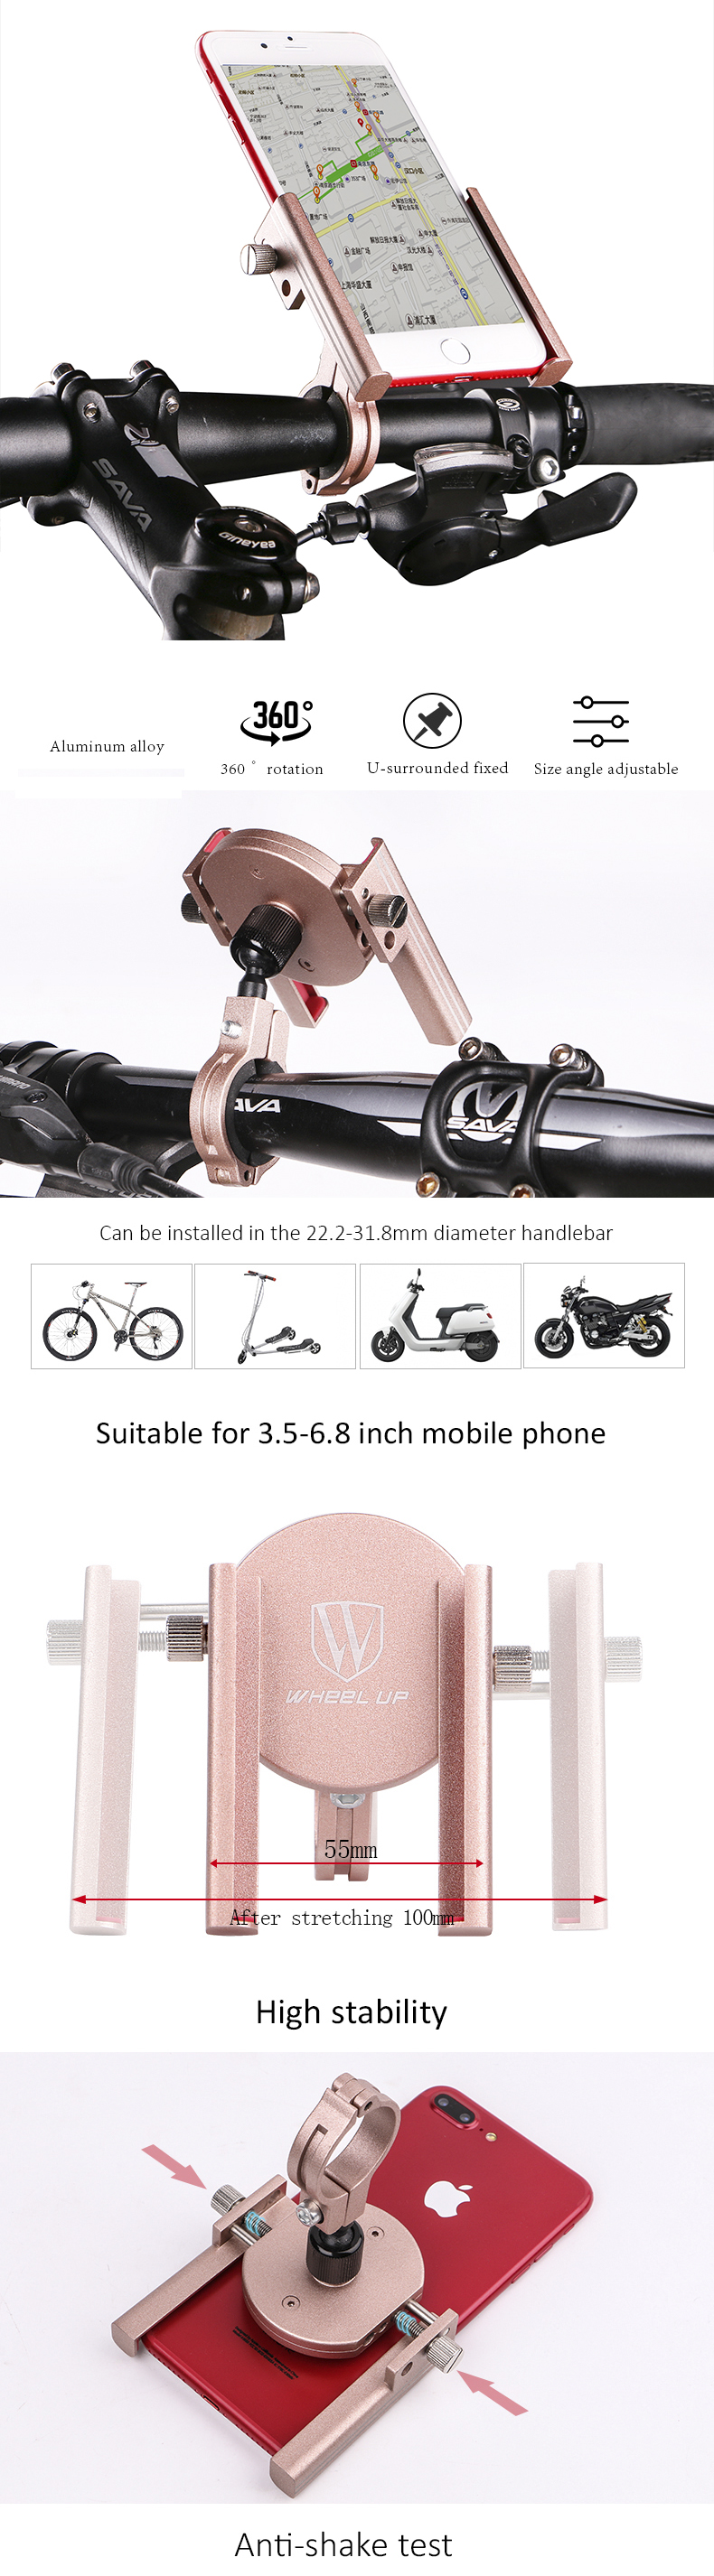 WHEEL UP 360° Rotation Bicycle Phone Holder 3.5-6.8 inch Aluminum Alloy Non-slip Anti Shake